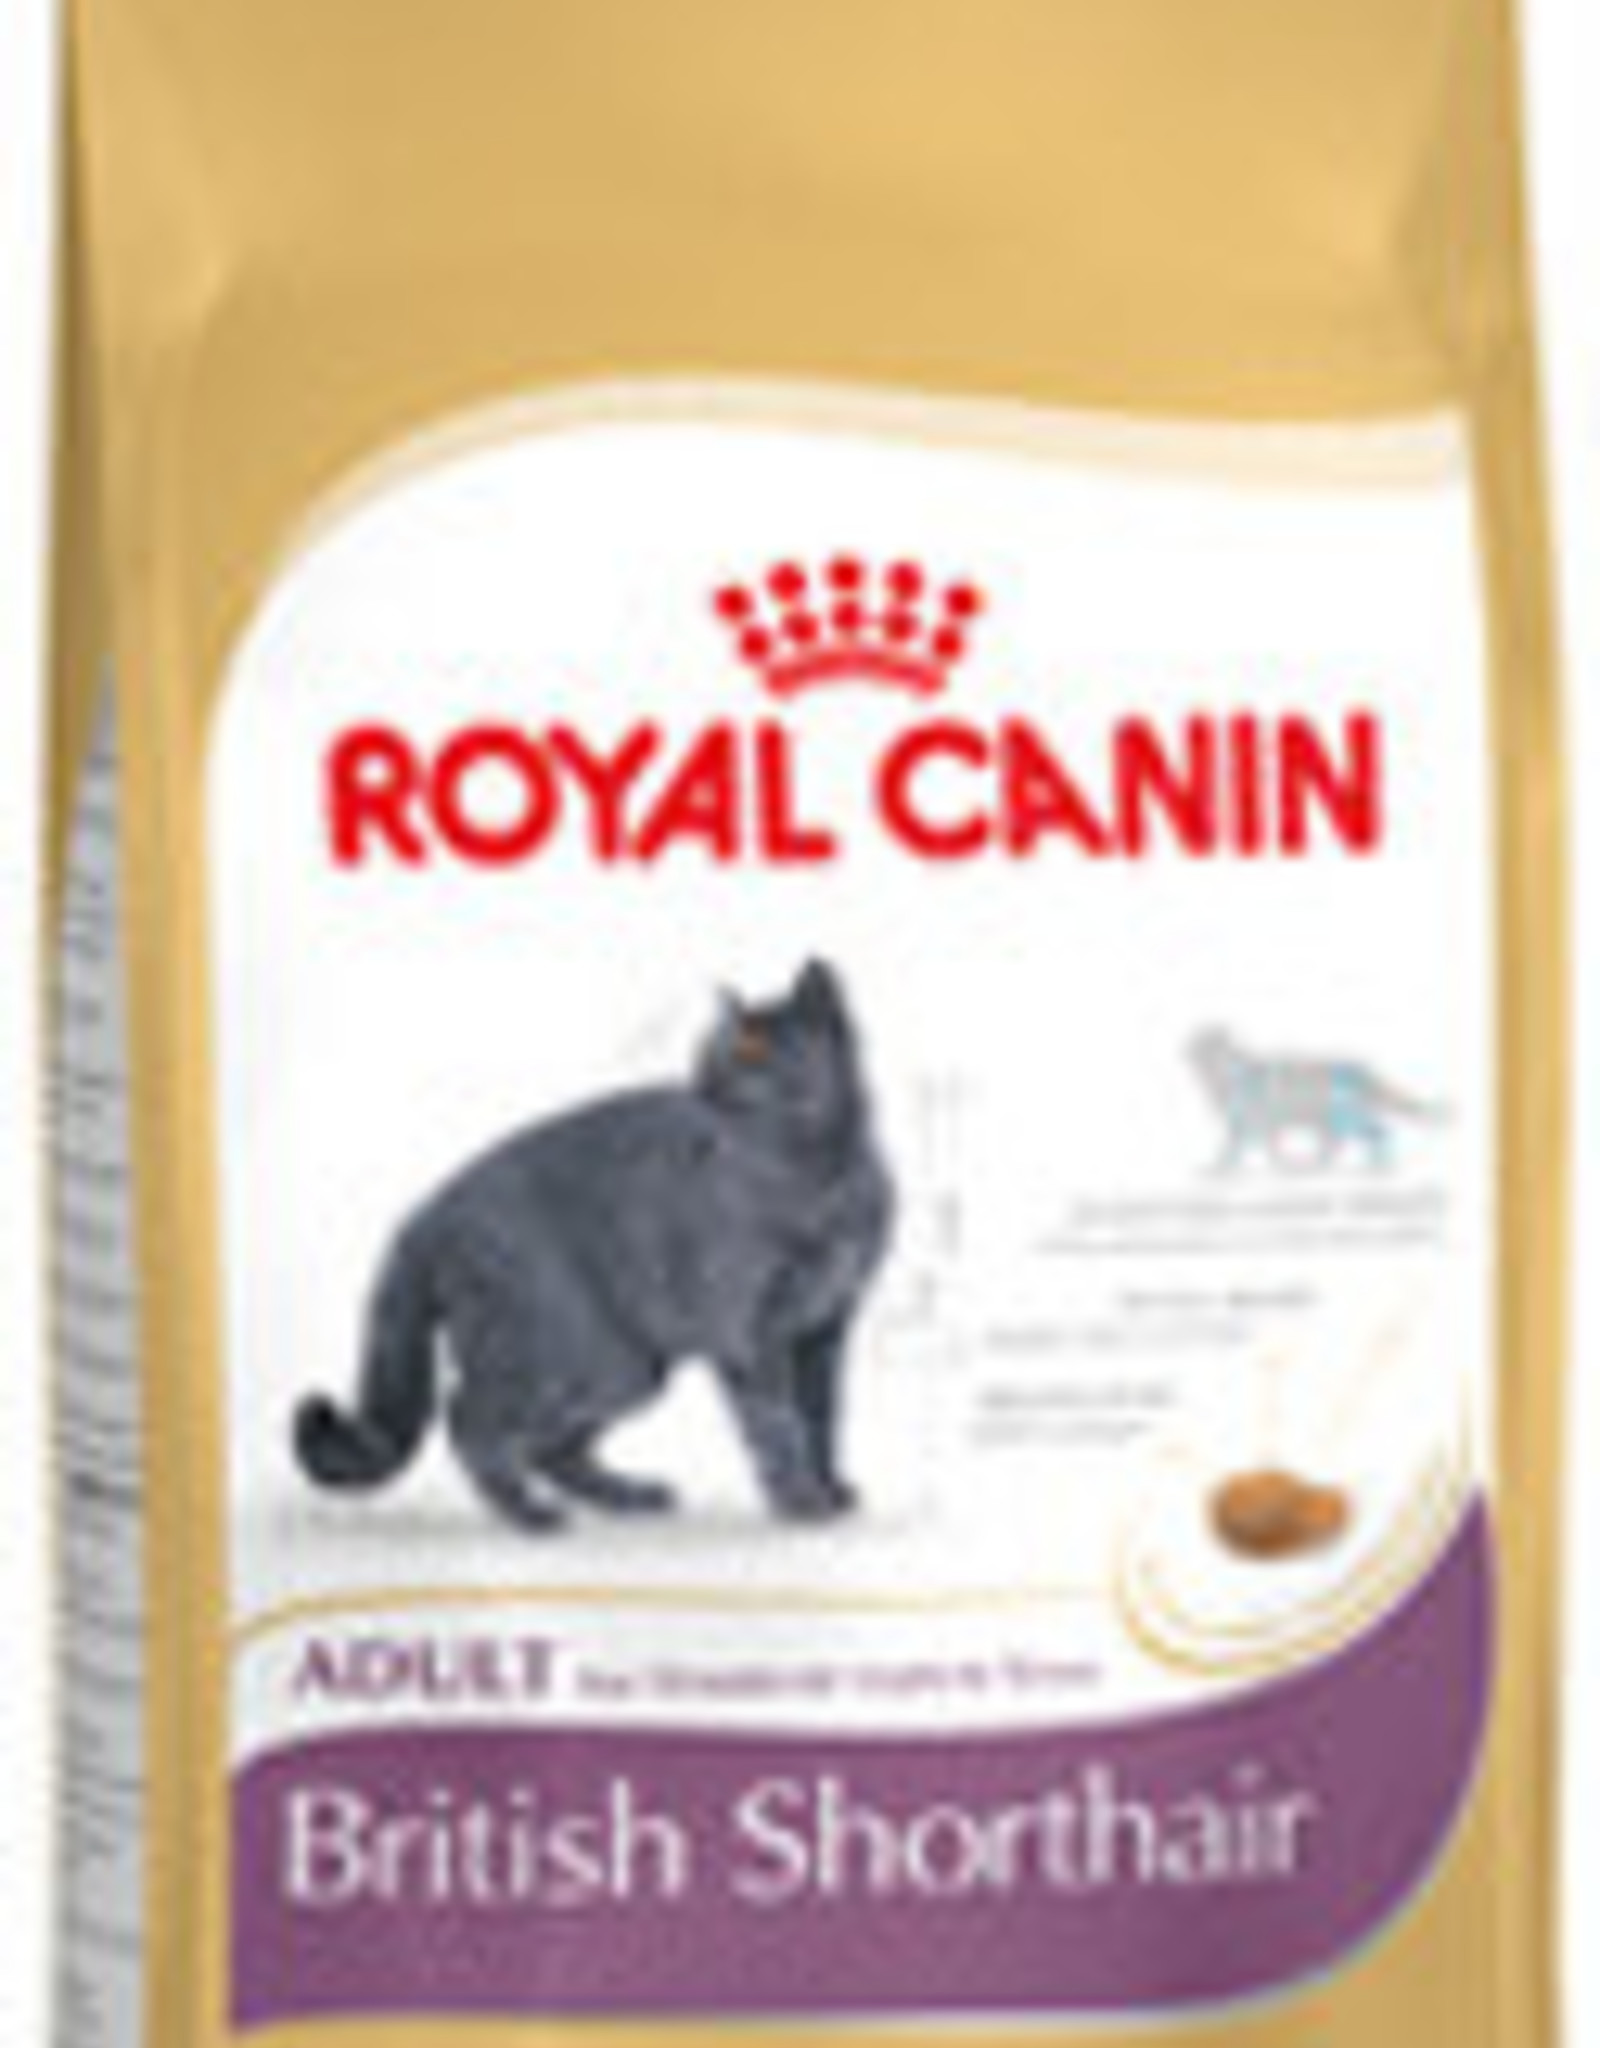 Royal Canin Royal Canin Fbn British Shorthair 400gr